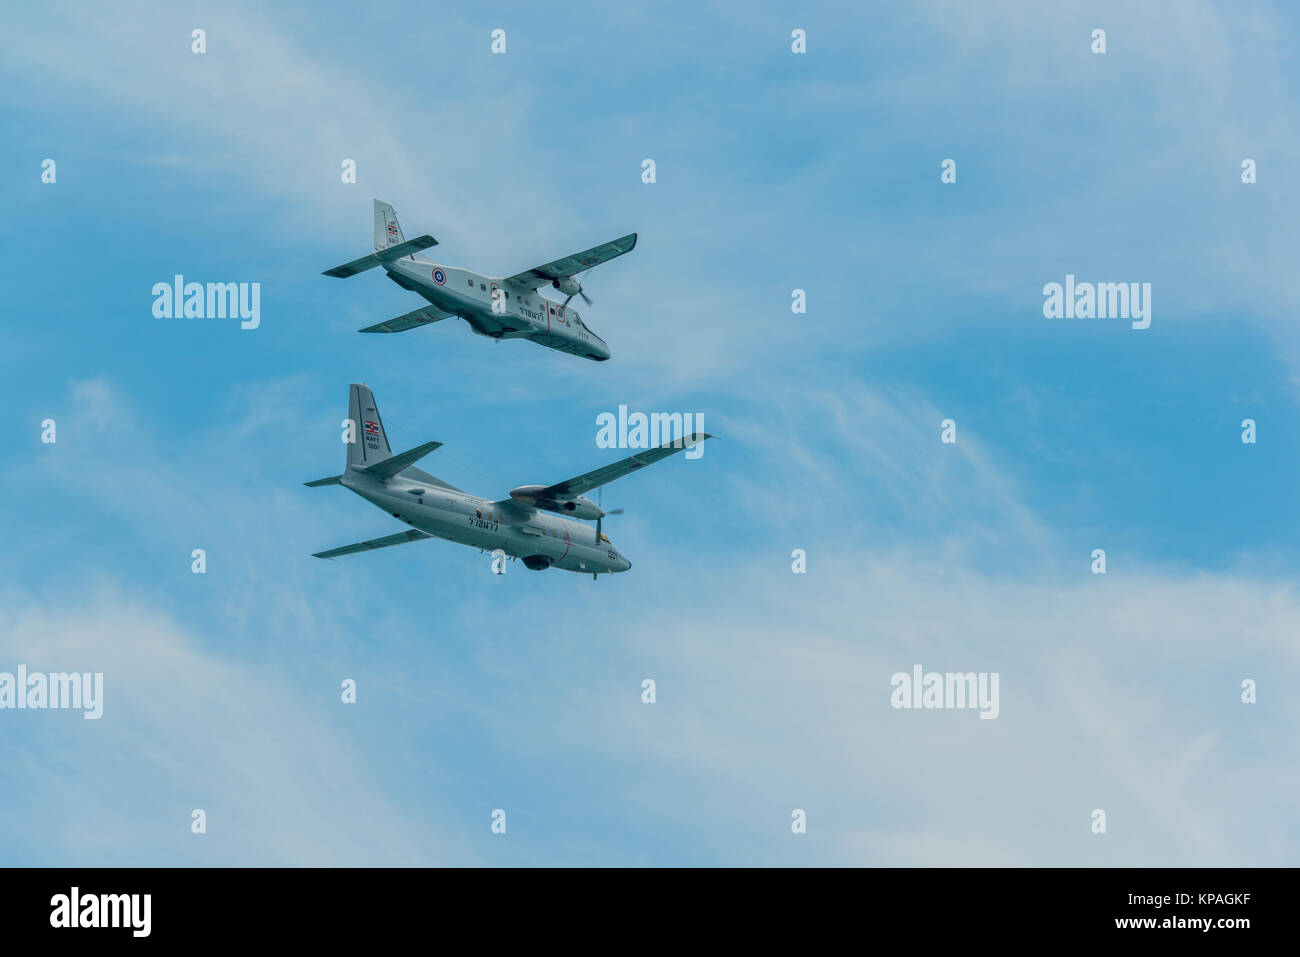 Pattaya, Thailand - November 9, 2017, Two warplane flying to support fleet review on the 50th anniversary ASEAN - Stock Image